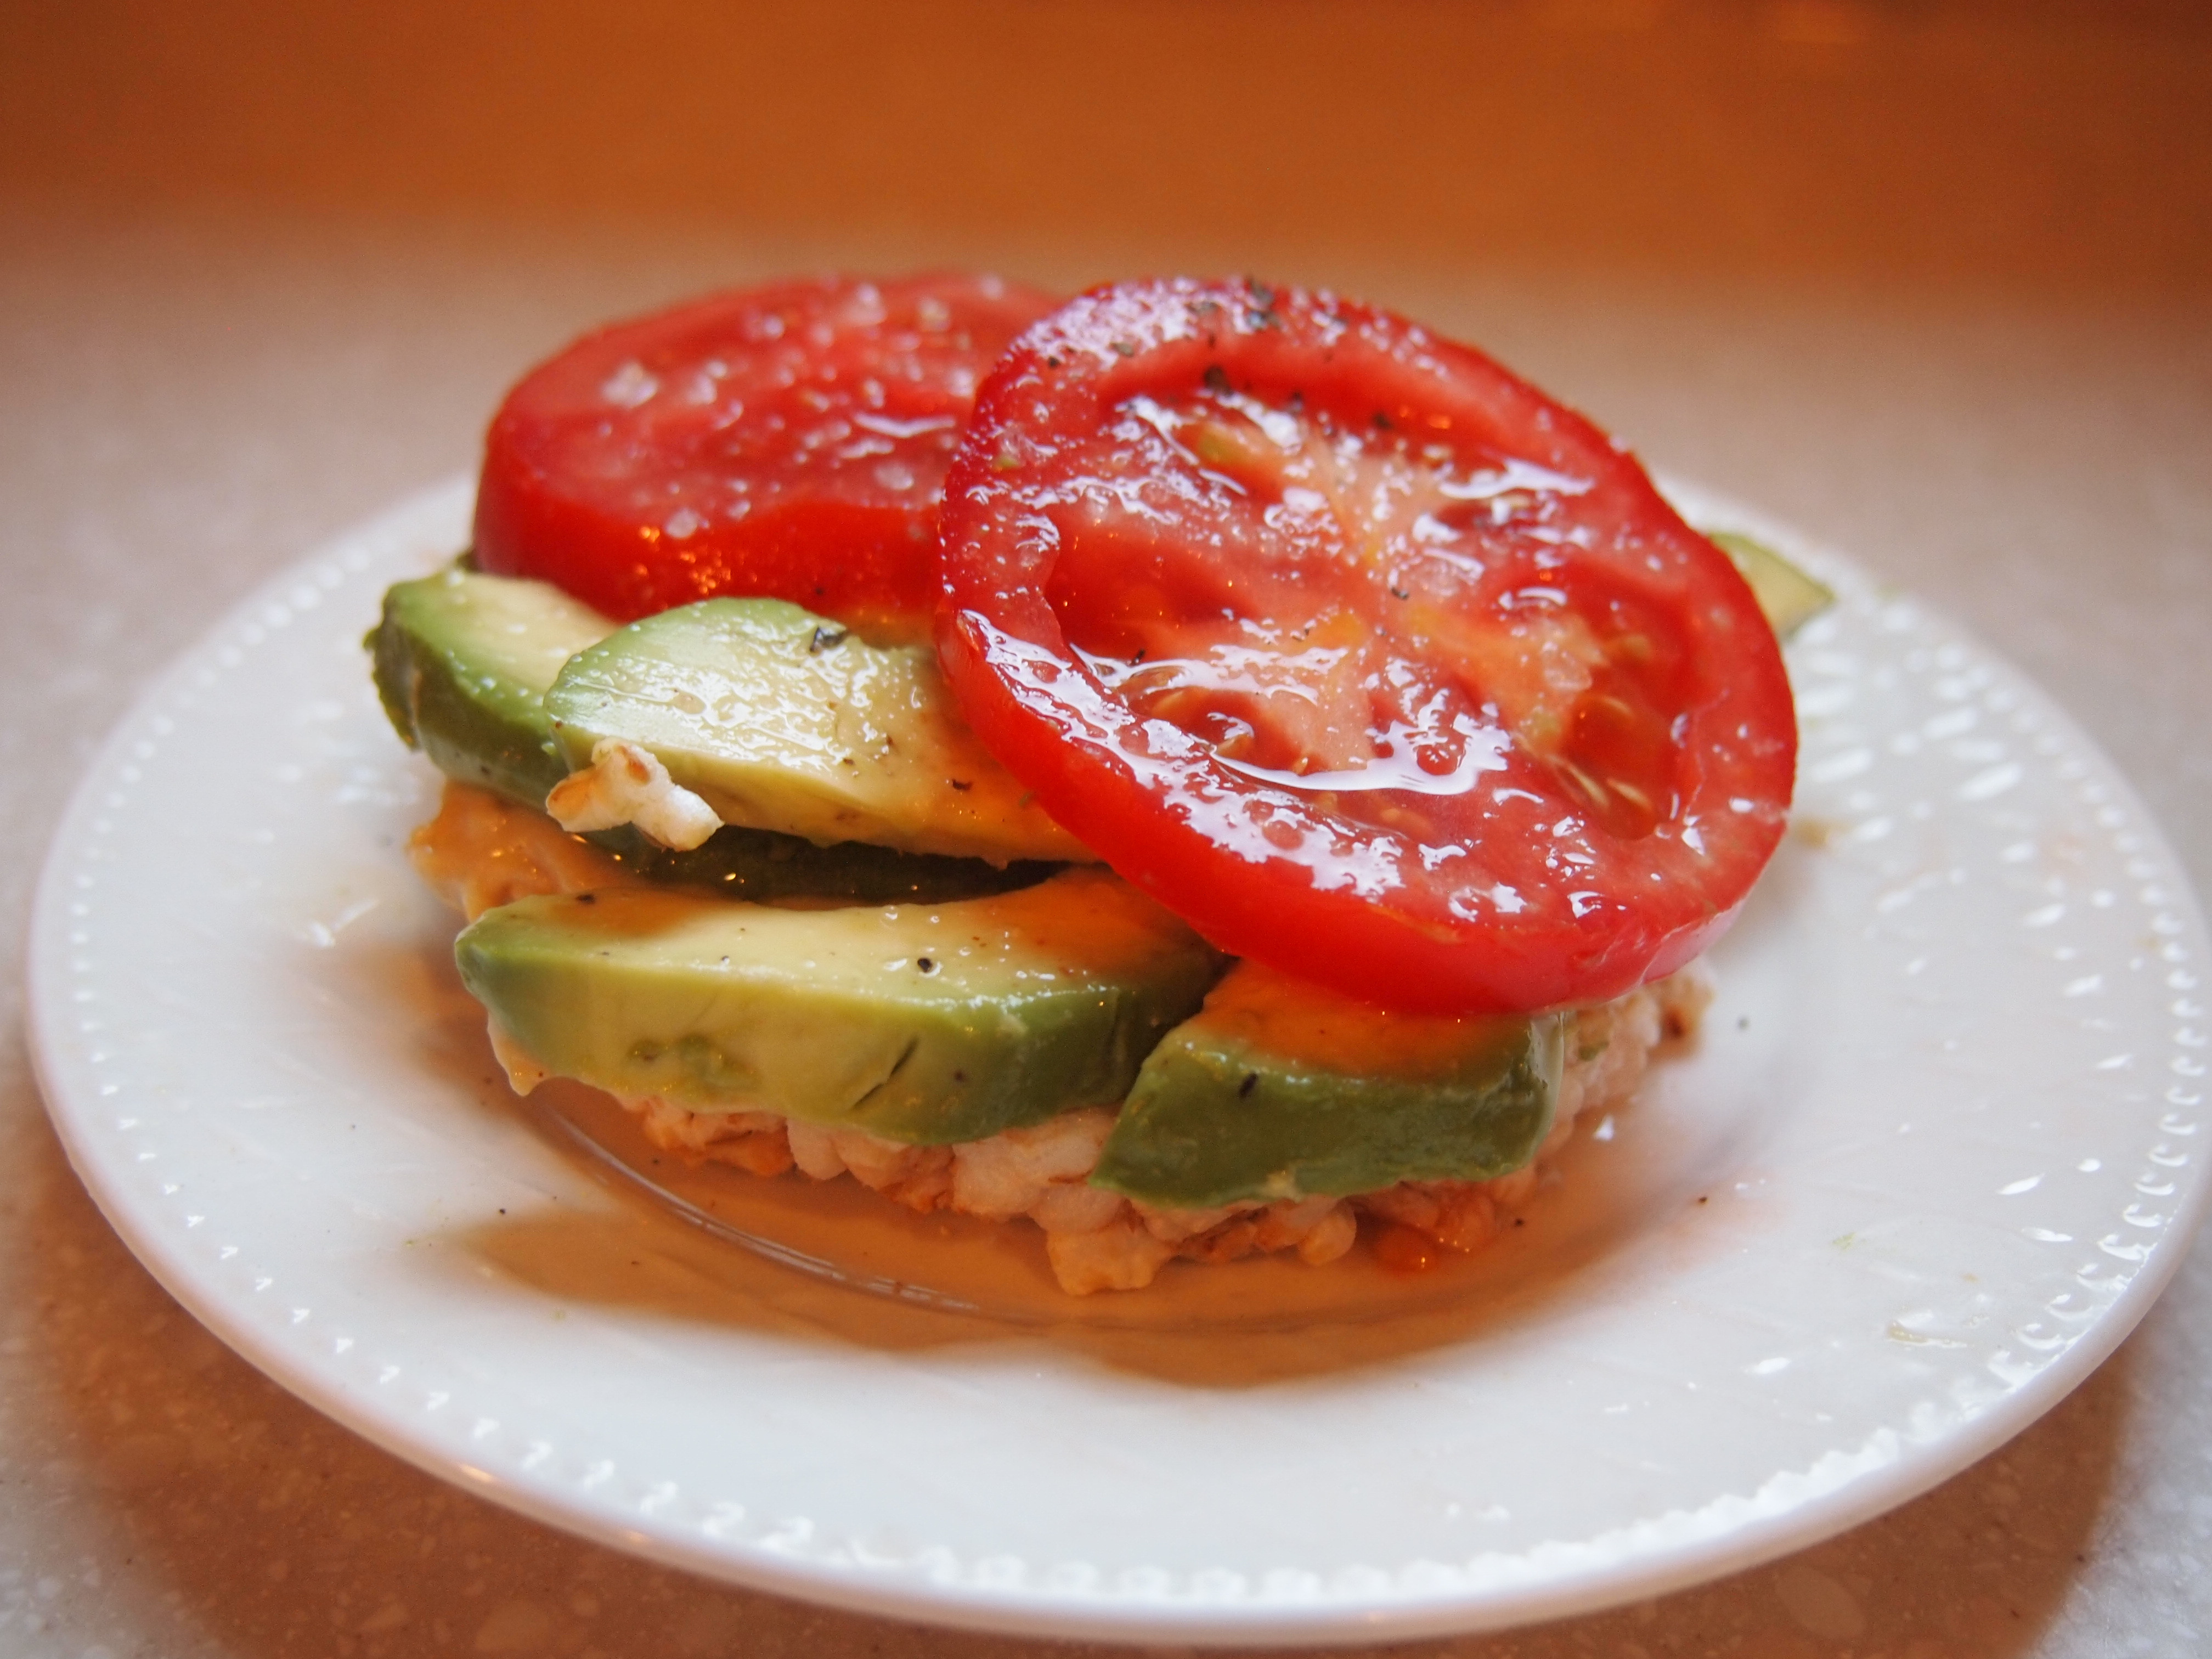 Healthy Mid Morning Snacks  Mid Morning Snack Idea 5 Avocado Hummus and Tomato on